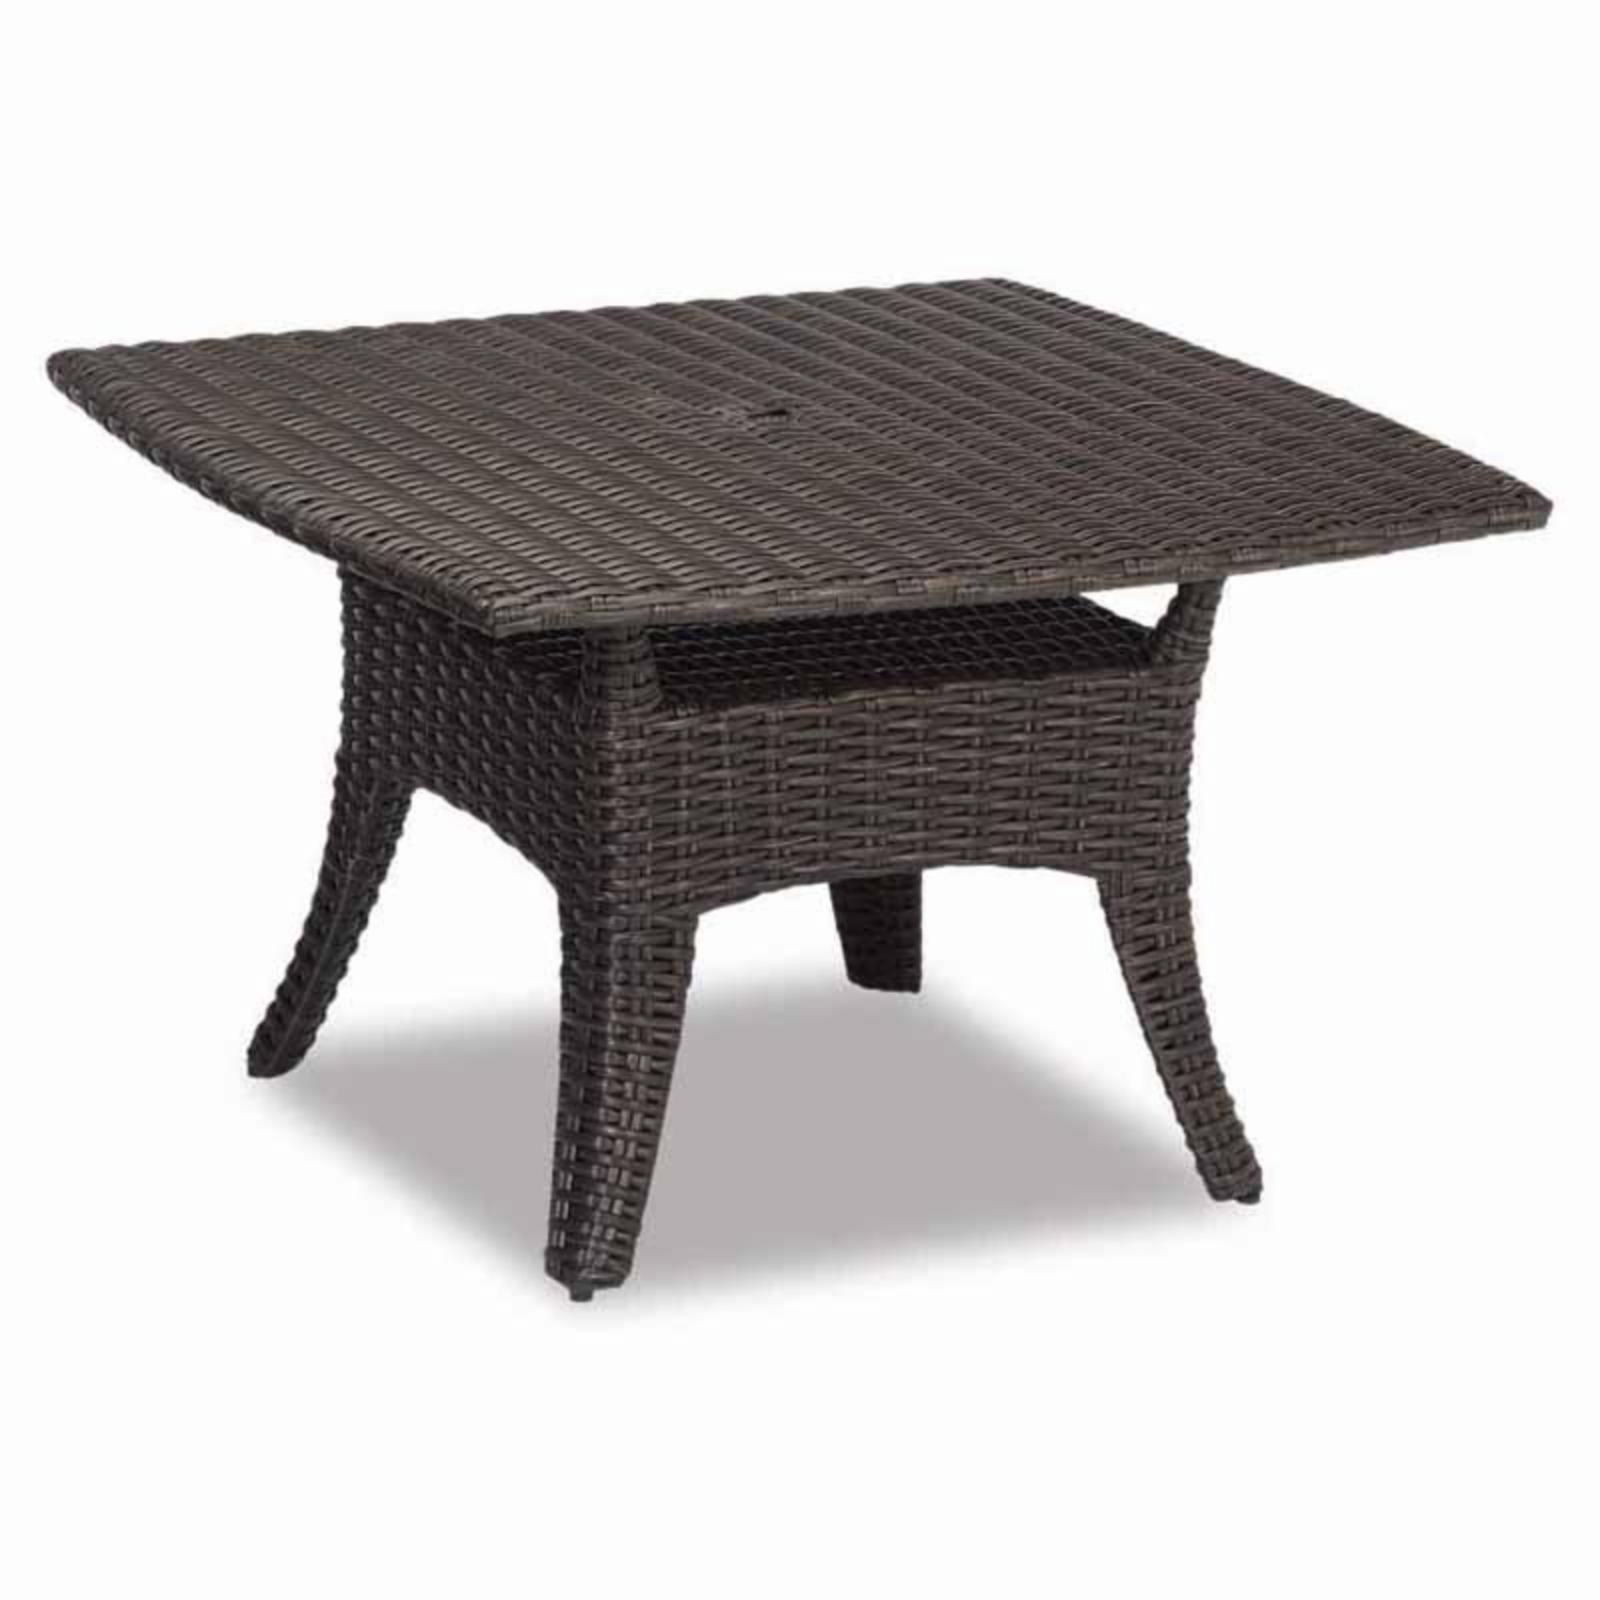 Outdoor Sunset West Cardiff 48 in. Wicker Boat Shaped Pat...